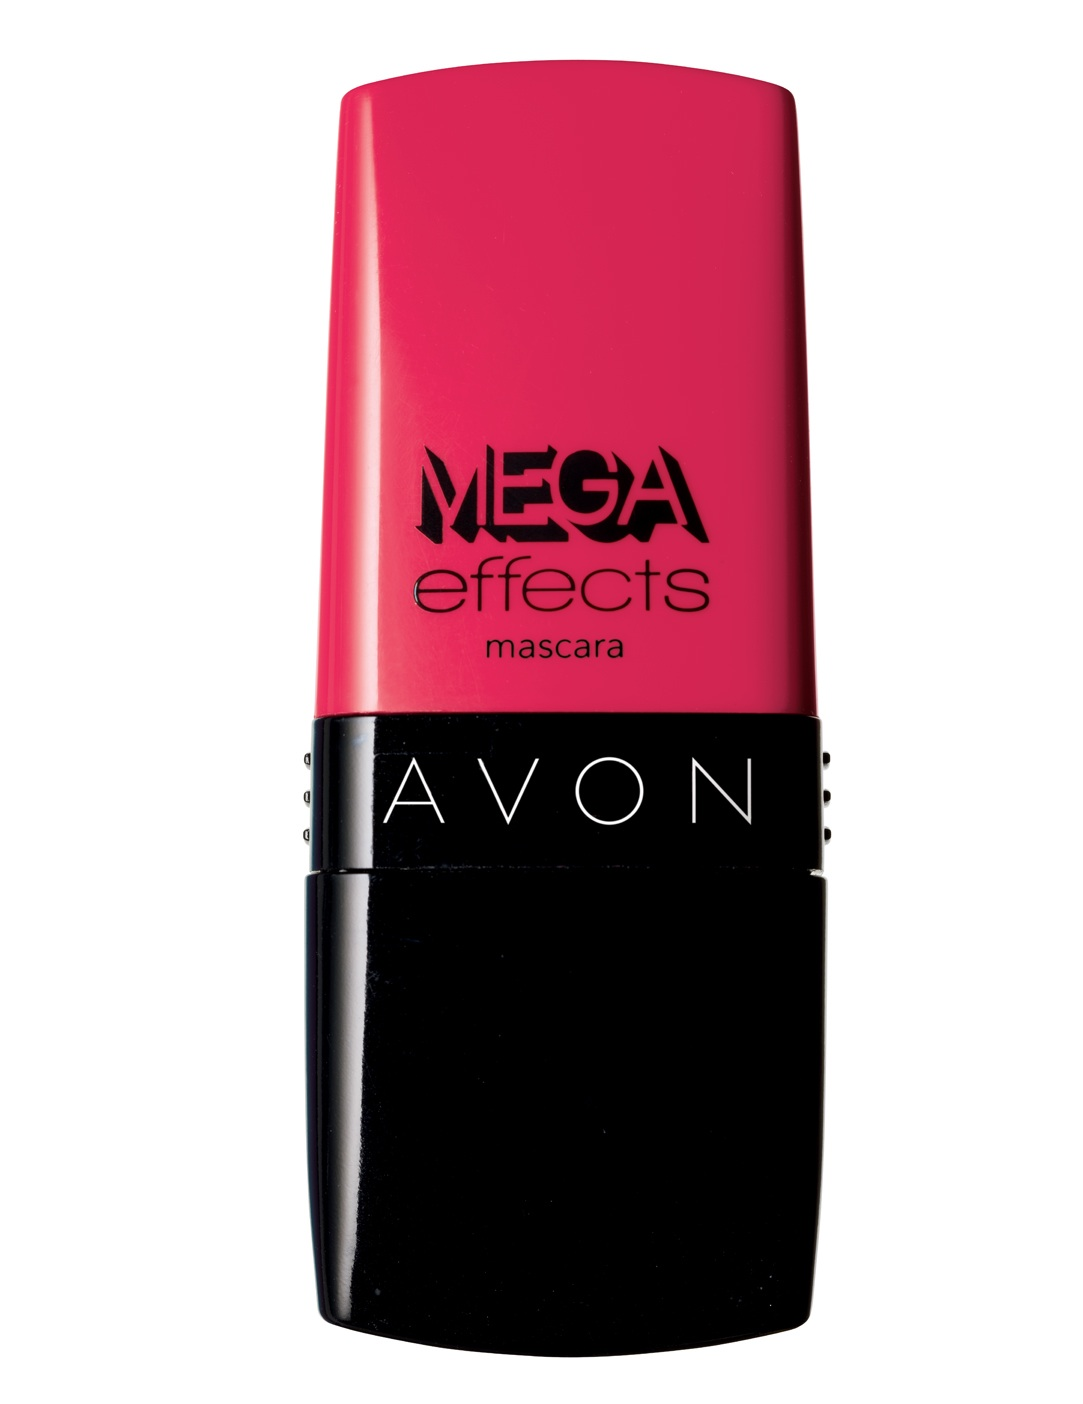 mascara-Avon-Mega-effects